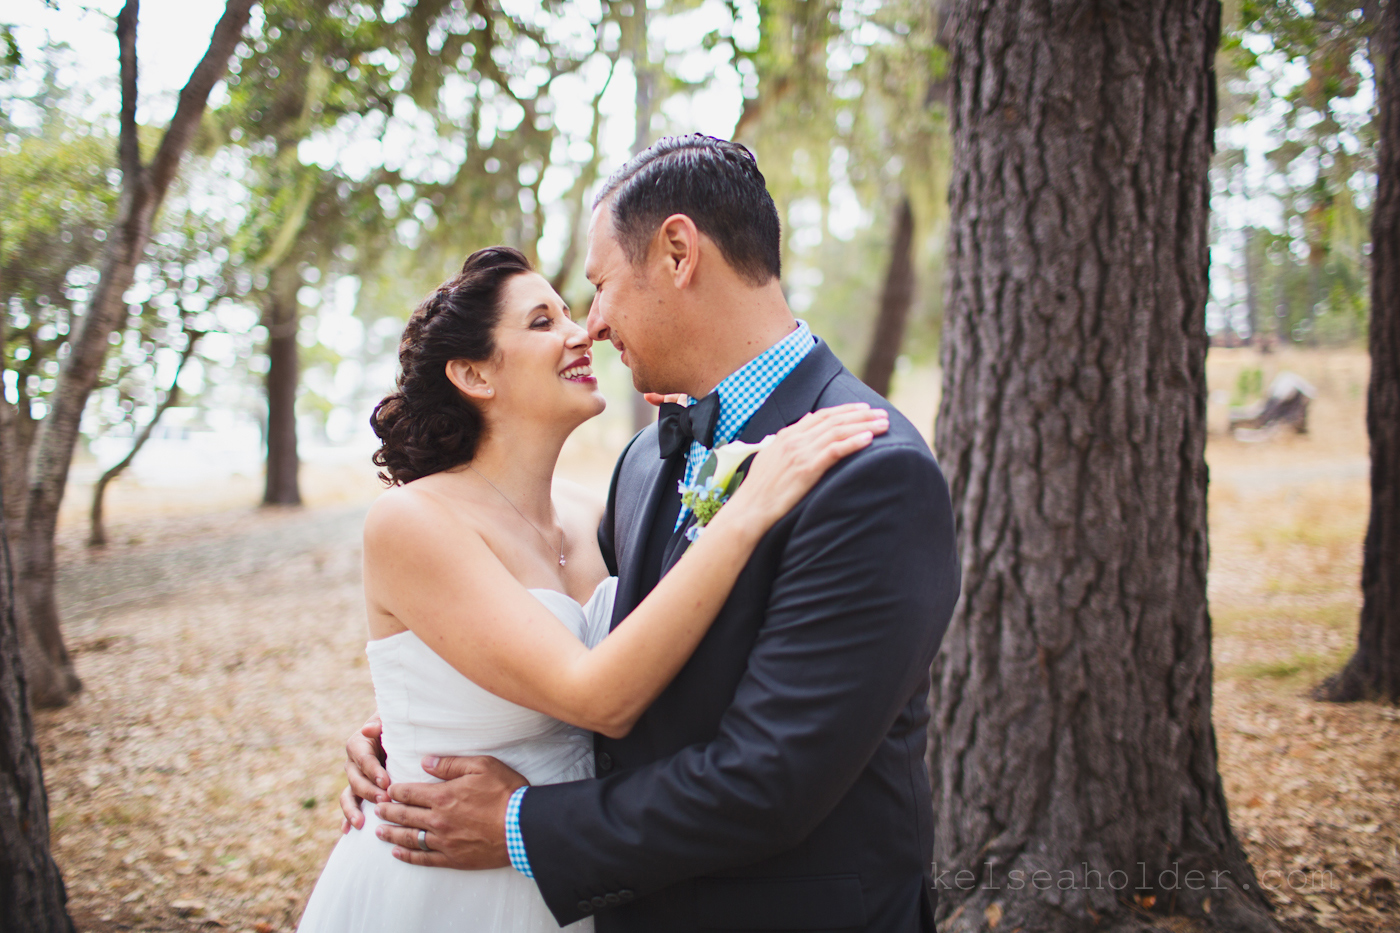 kelsea_holder_eco_outdoor_california_wedding077